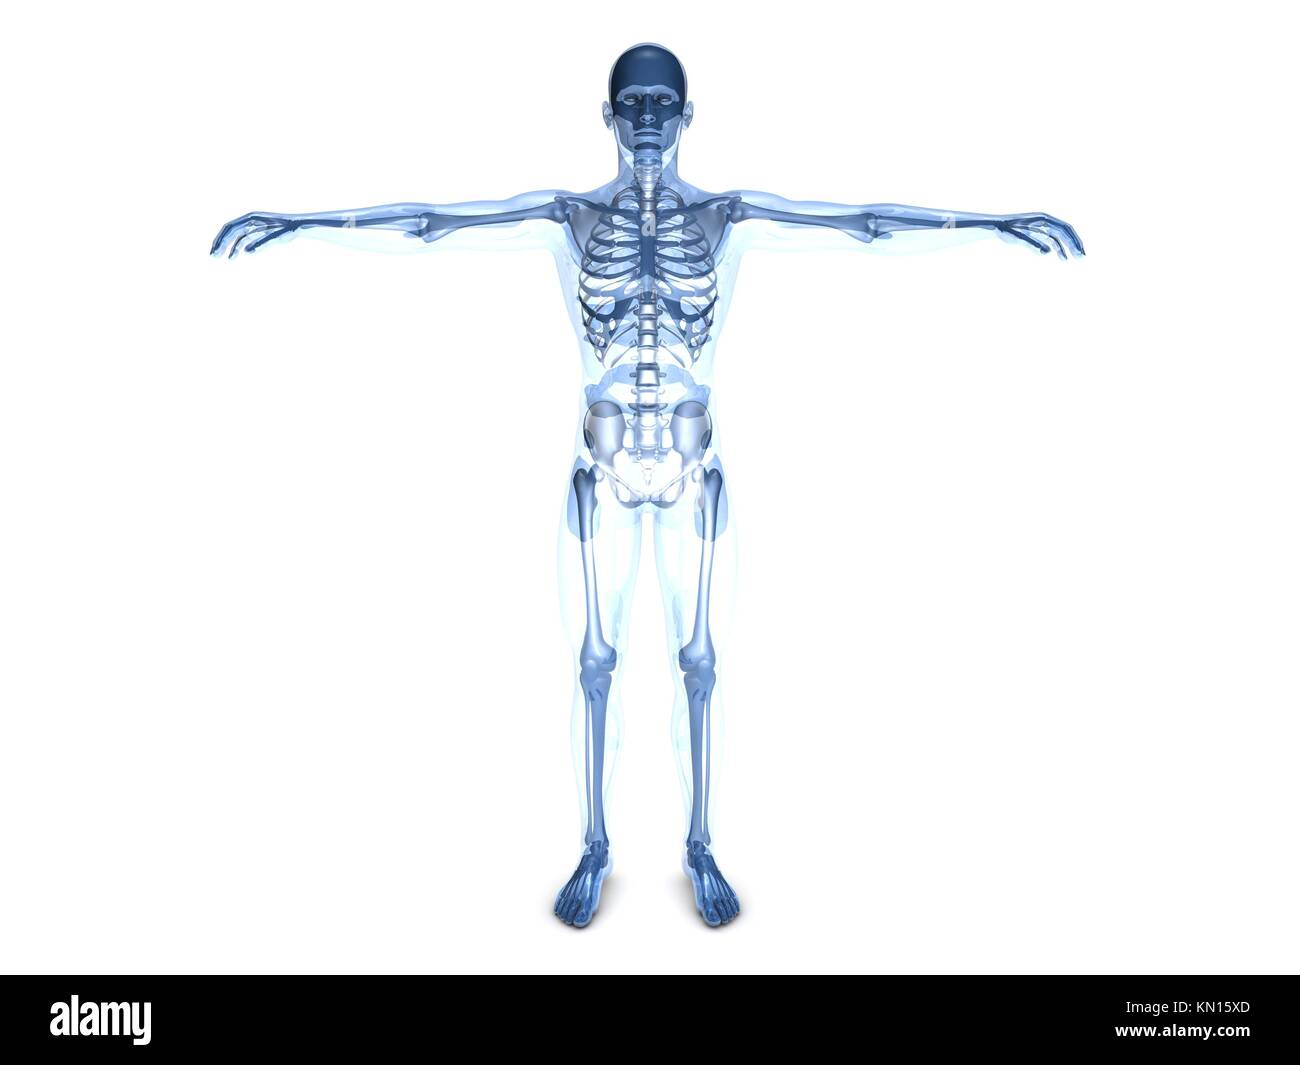 Human Proportion Stockfotos & Human Proportion Bilder - Alamy